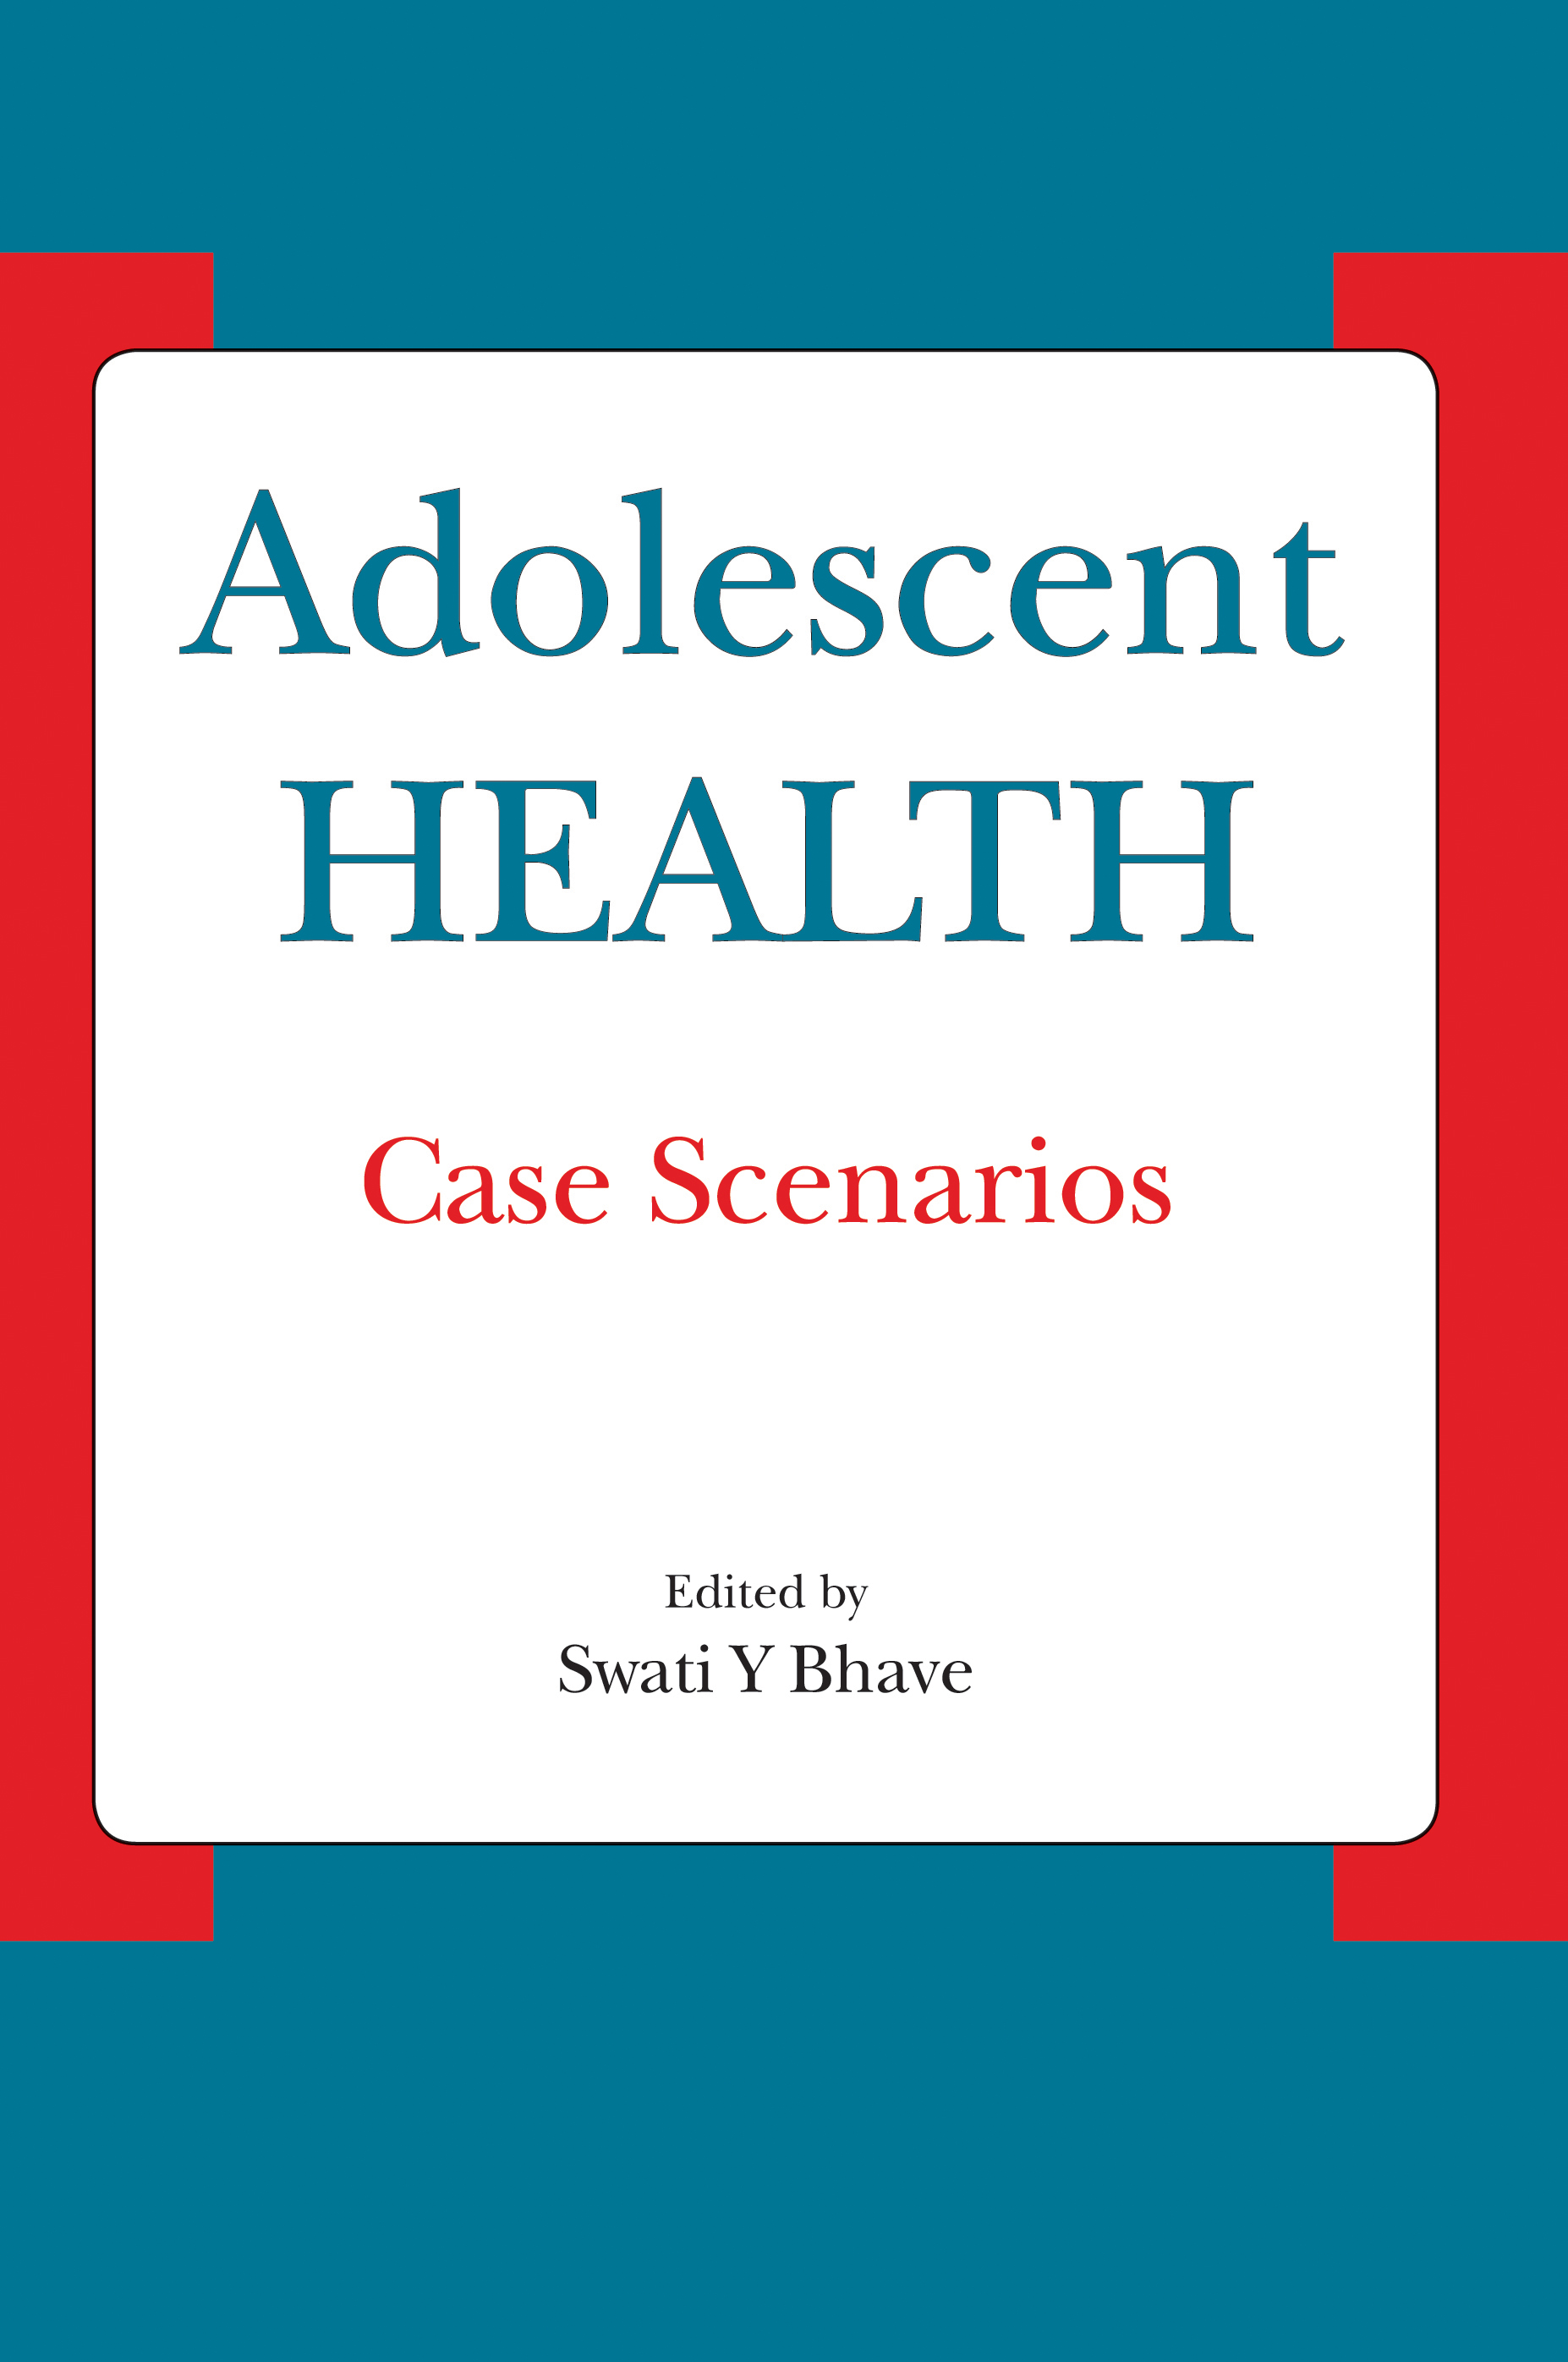 Adolescent HEALTH - case scenarios